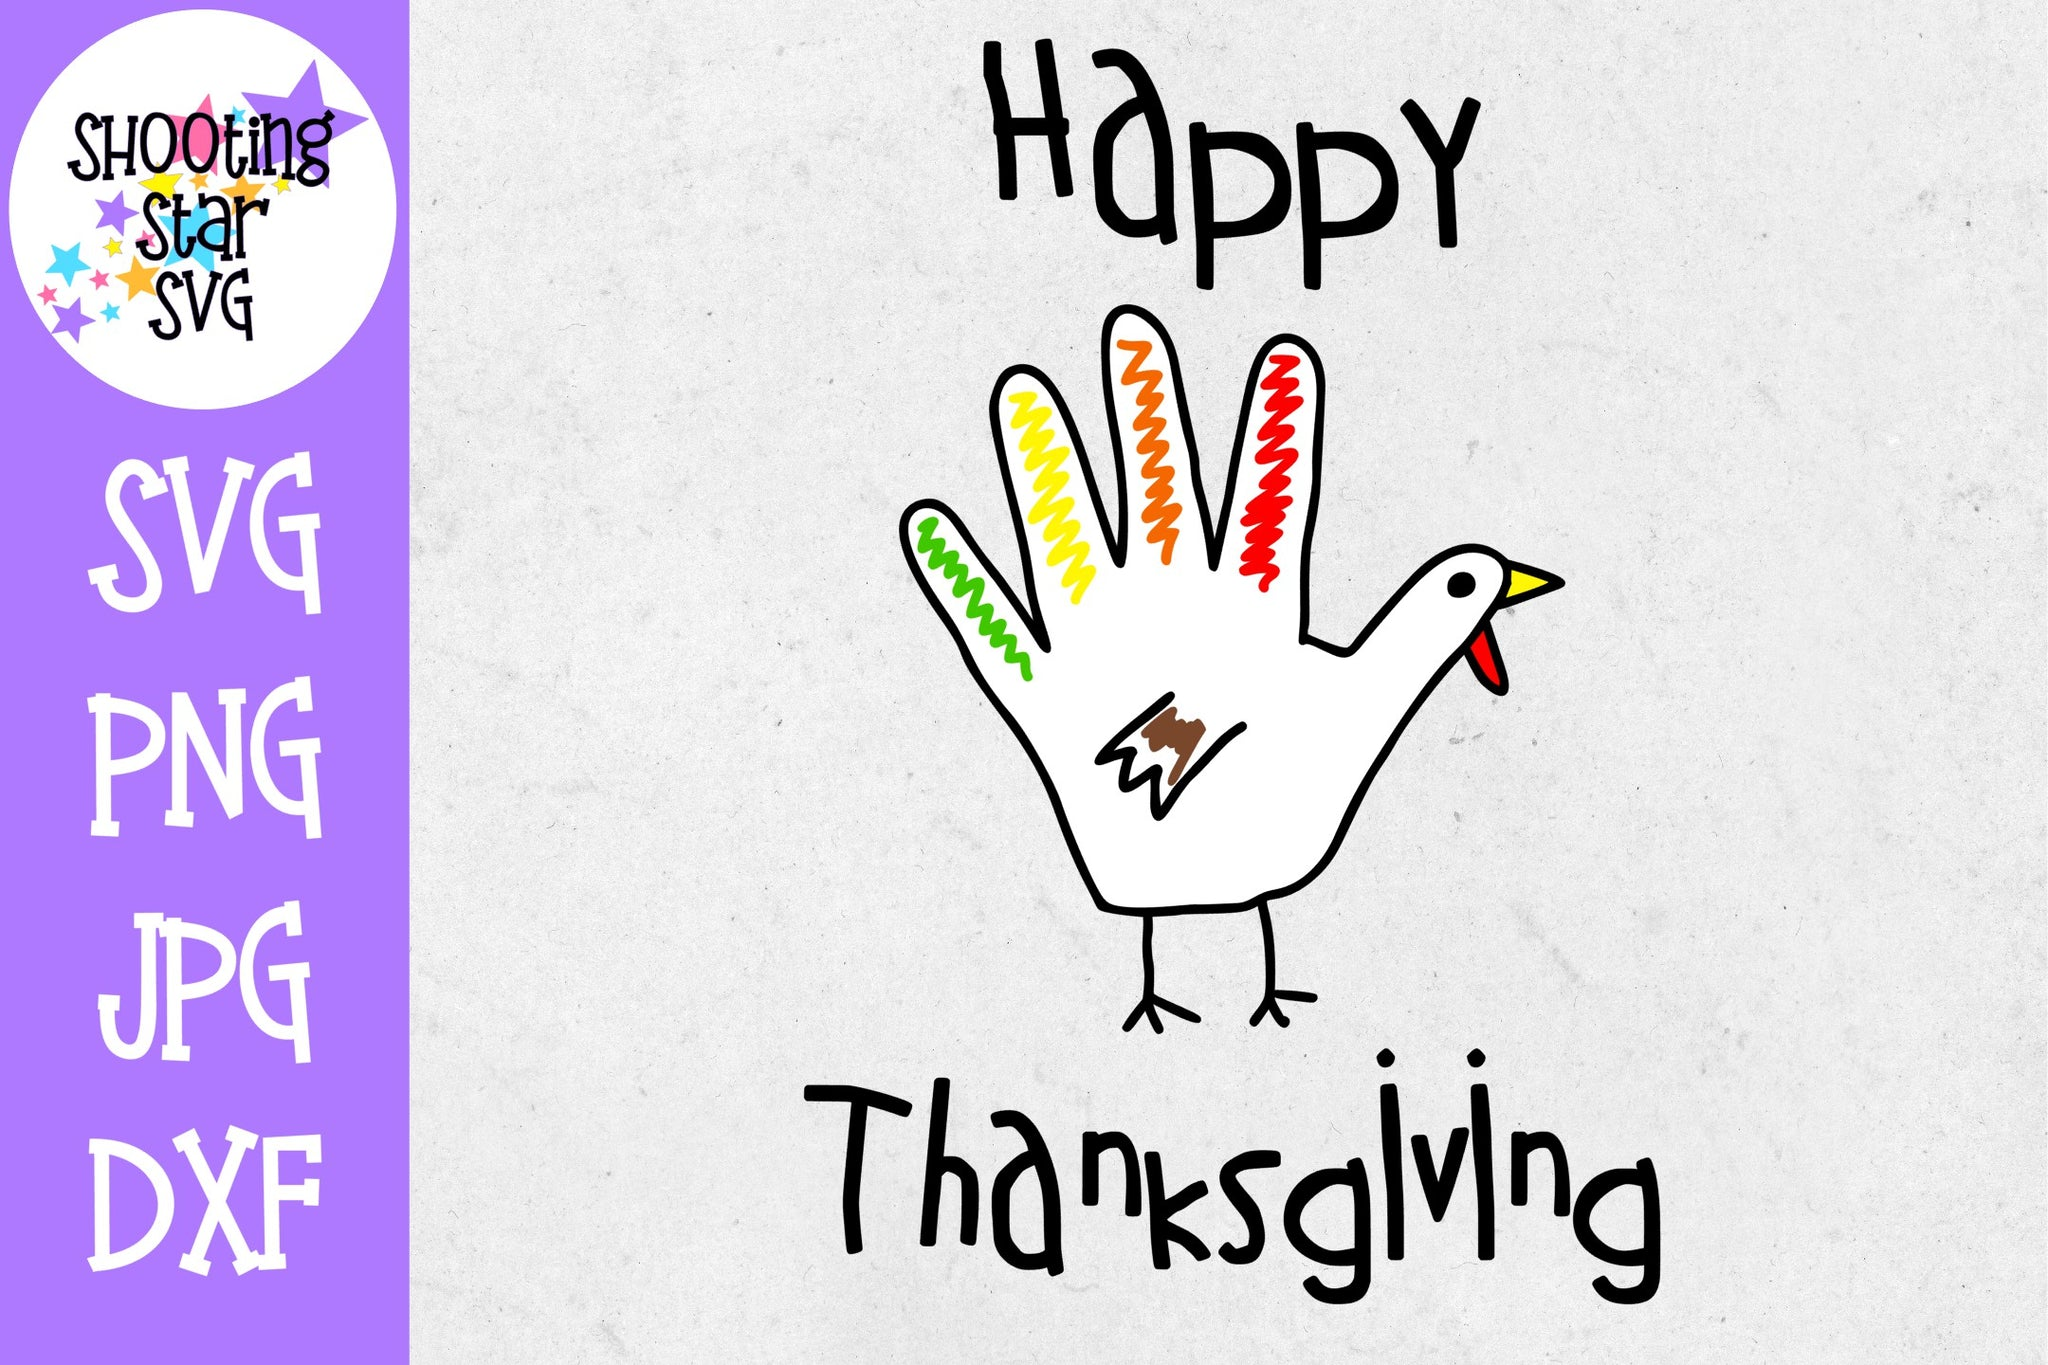 Happy Thanksgiving Turkey Hand SVG - Thanksgiving SVG